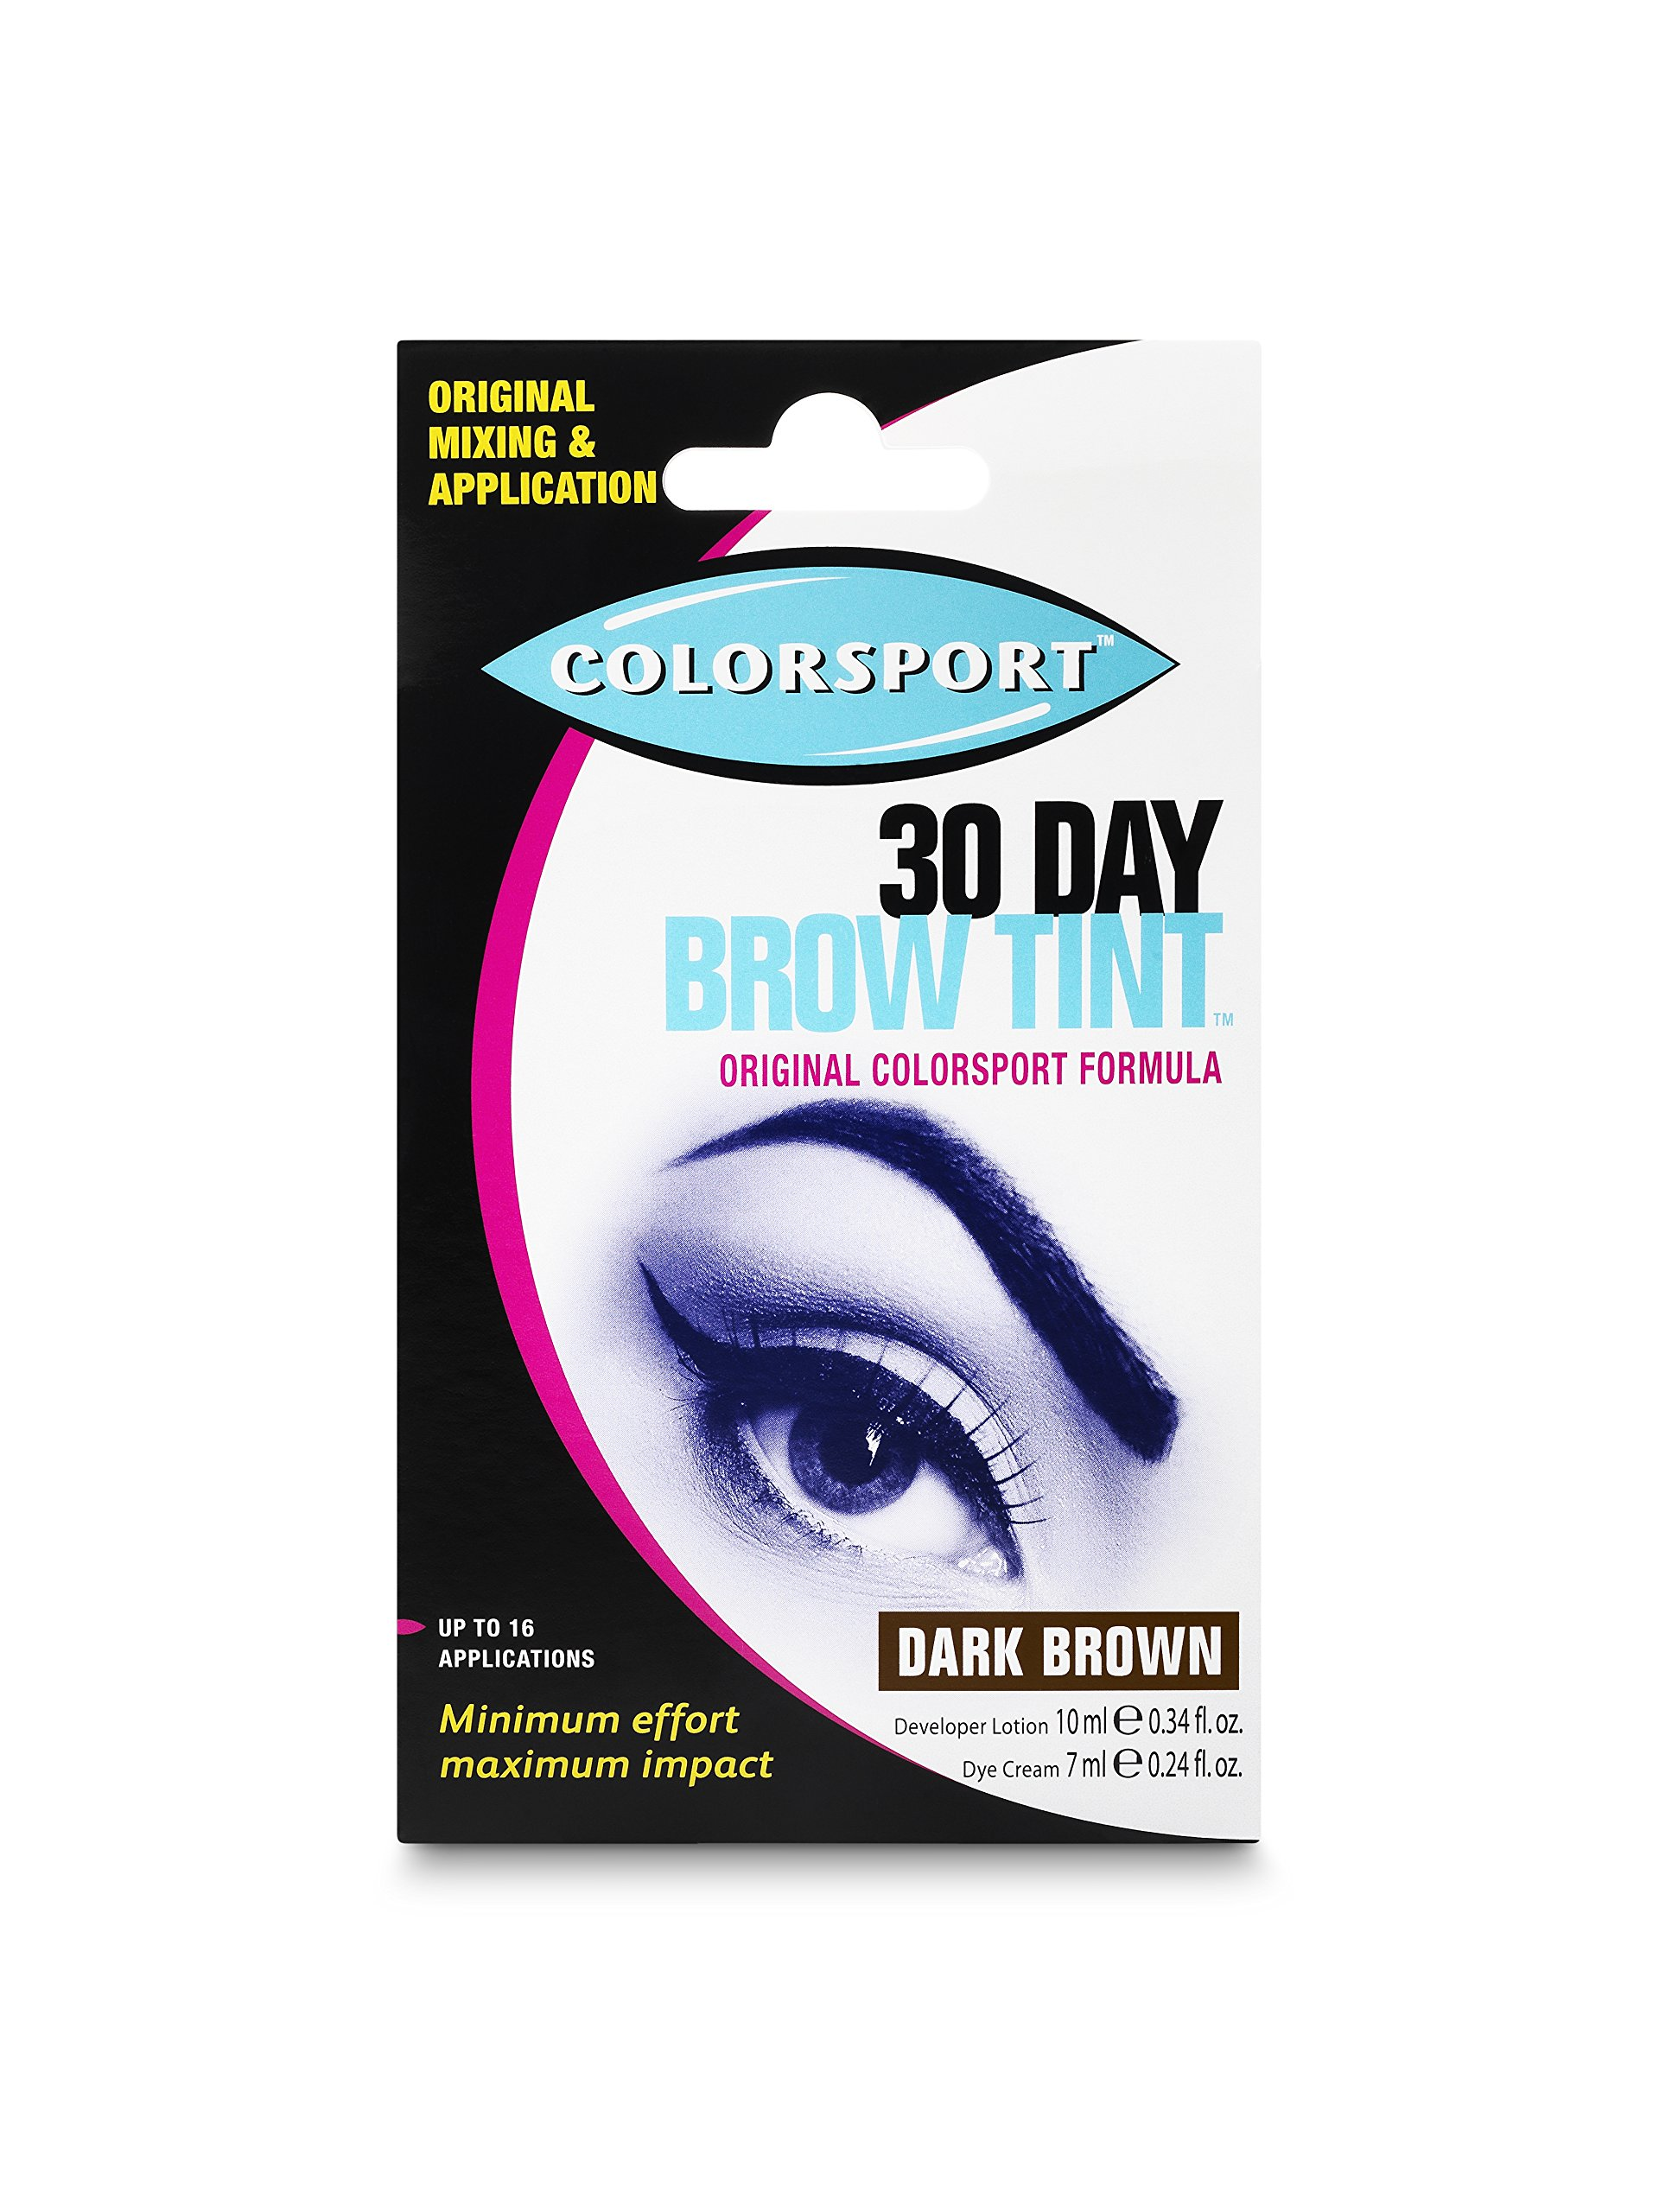 Colorsport 30 Day Brow Tint, Dark Brown by Colorsport